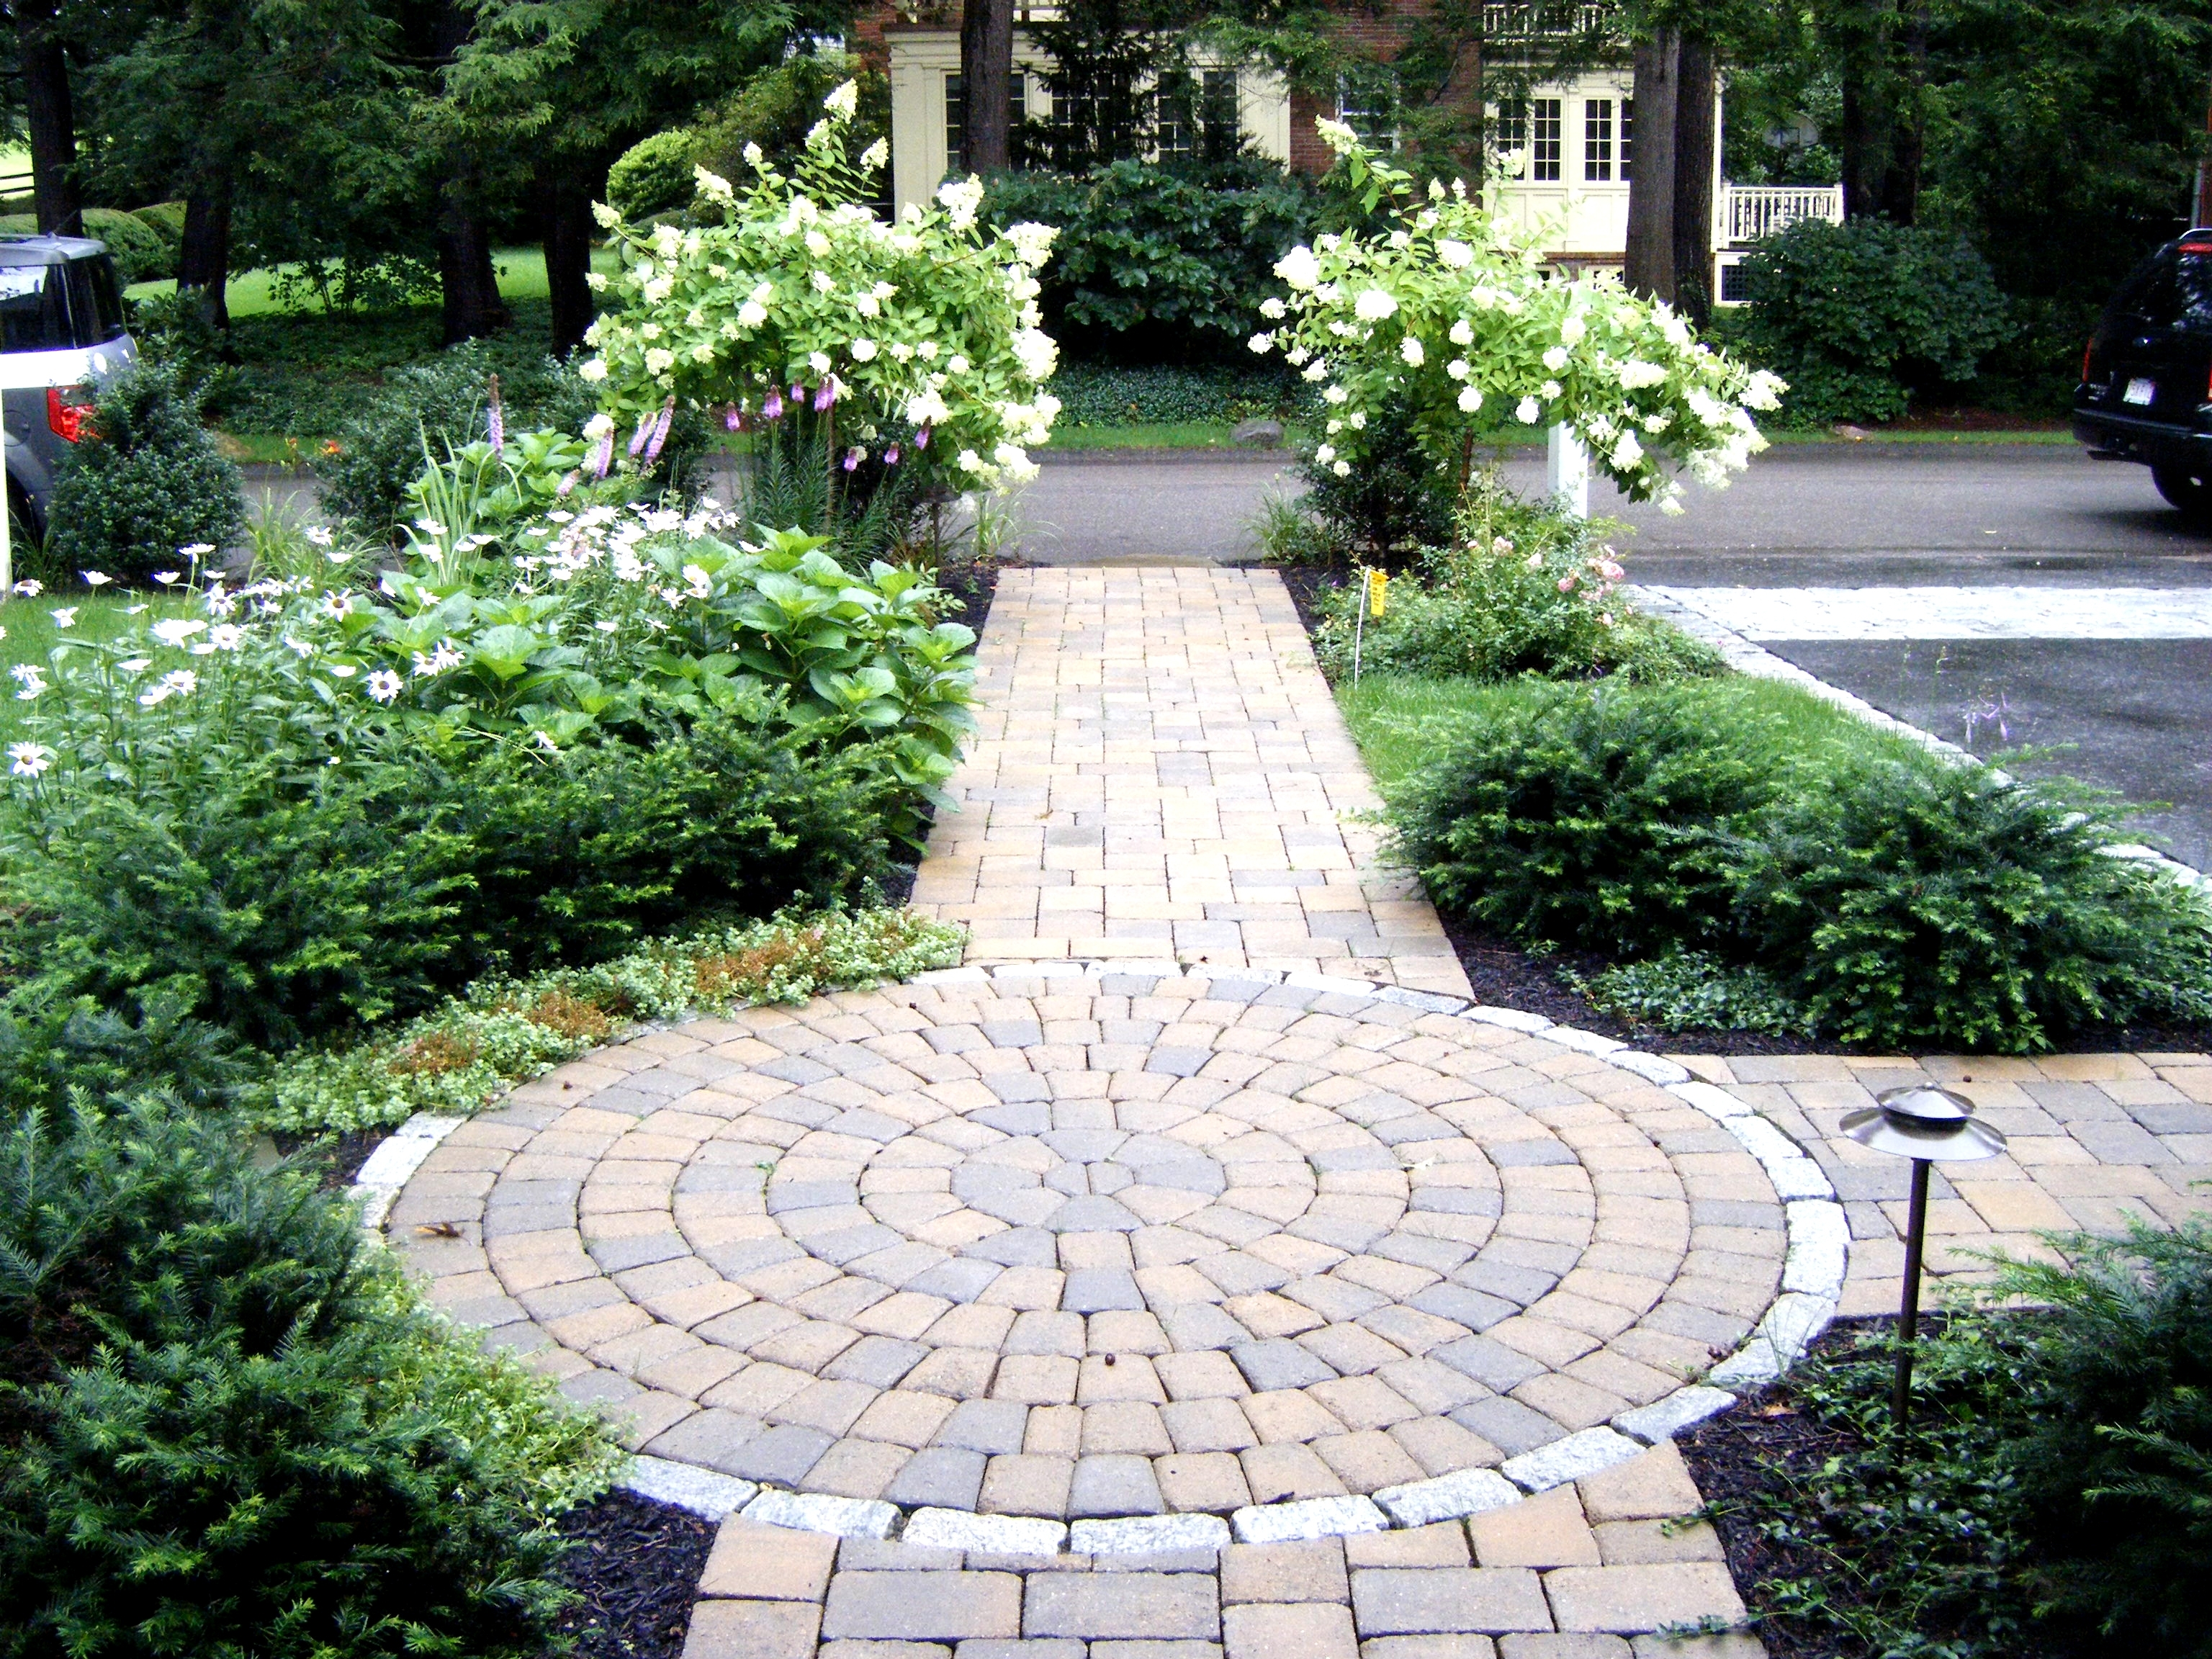 20 gorgeous front sidewalk landscaping ideas for your house garden design - Garden pathway design ideas with some natural stones trails ...